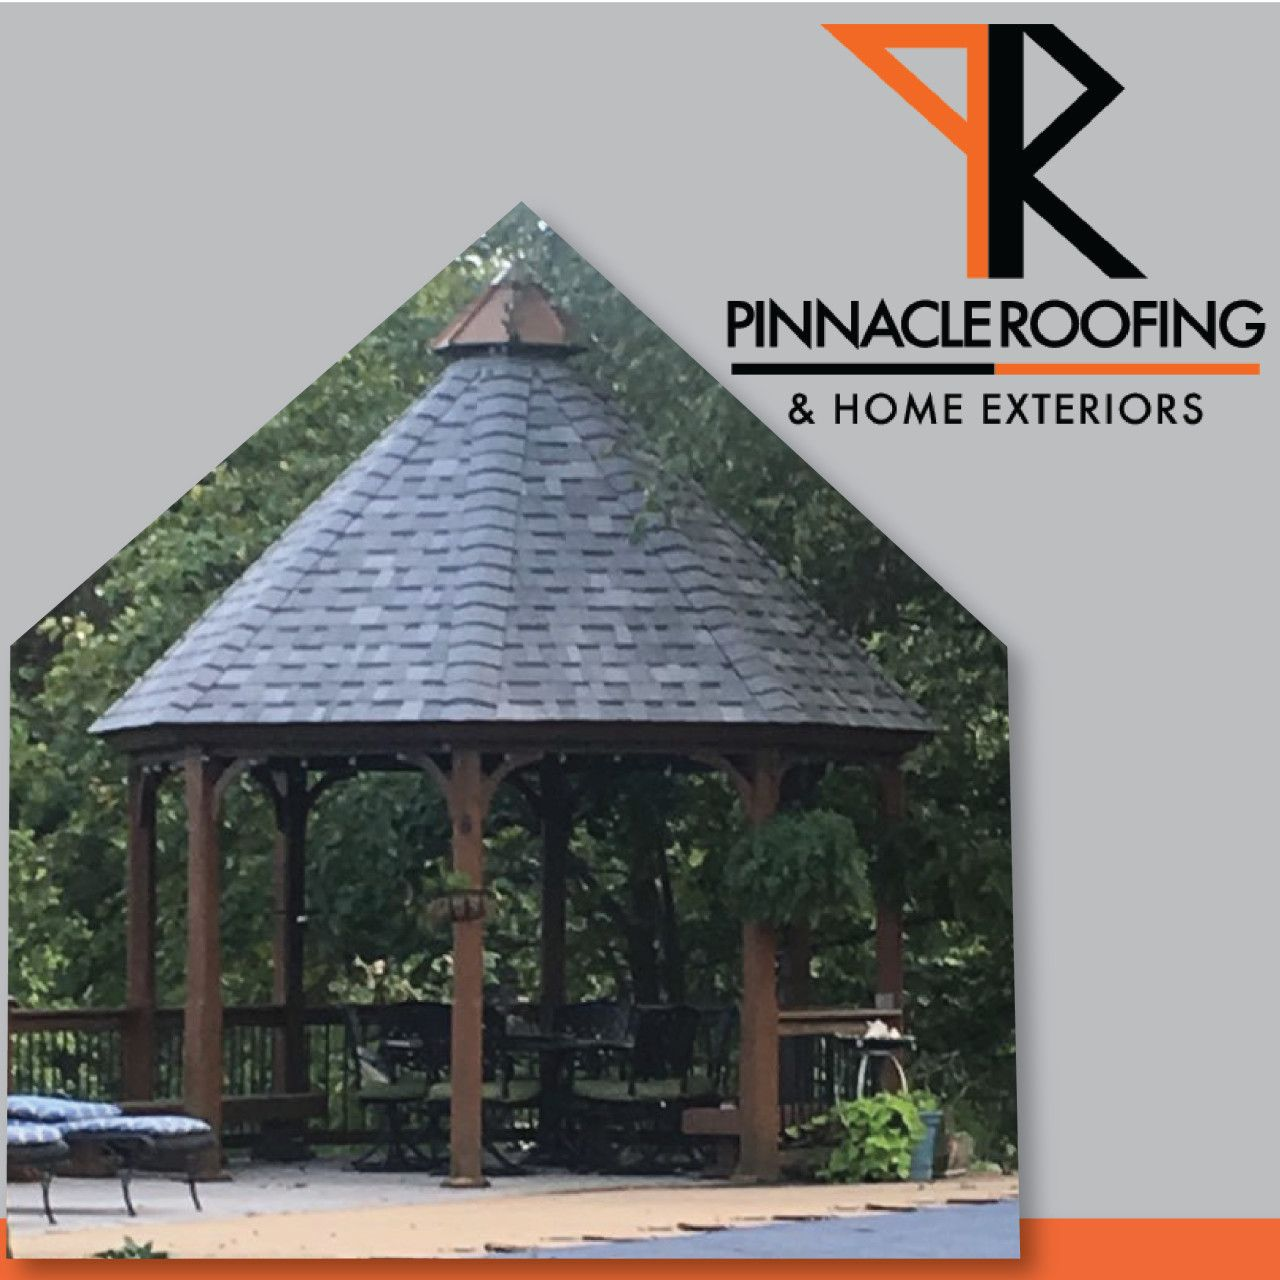 Pinnacle Roofing Is Dedicated To Helping Clients Find The Most Energy Efficient Roofing Options We Respect The Environmen Roofing Options Green Roof Cool Roof